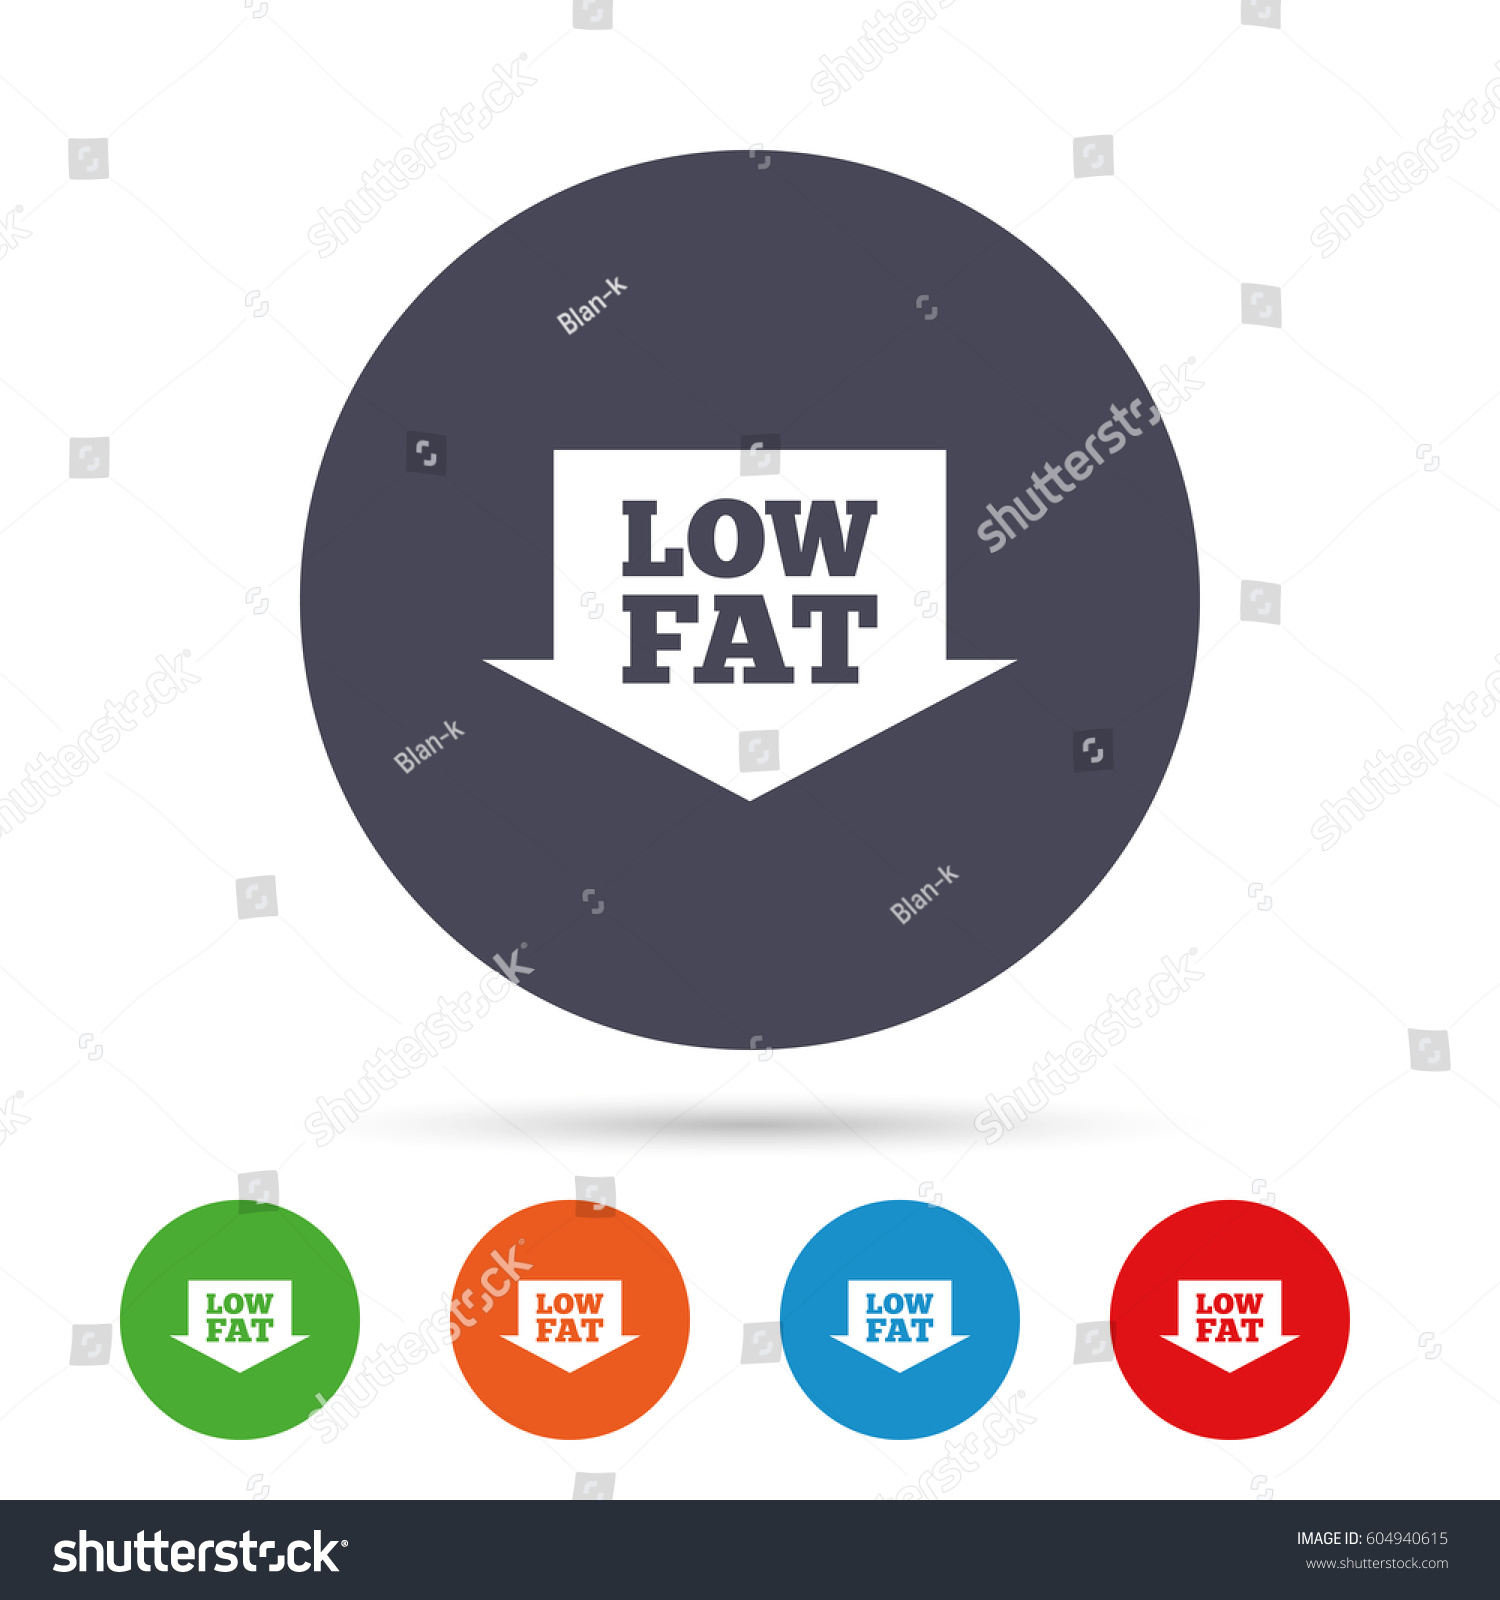 Low Fat Sign Icon Salt Sugar Stock Vector Royalty Free 604940615